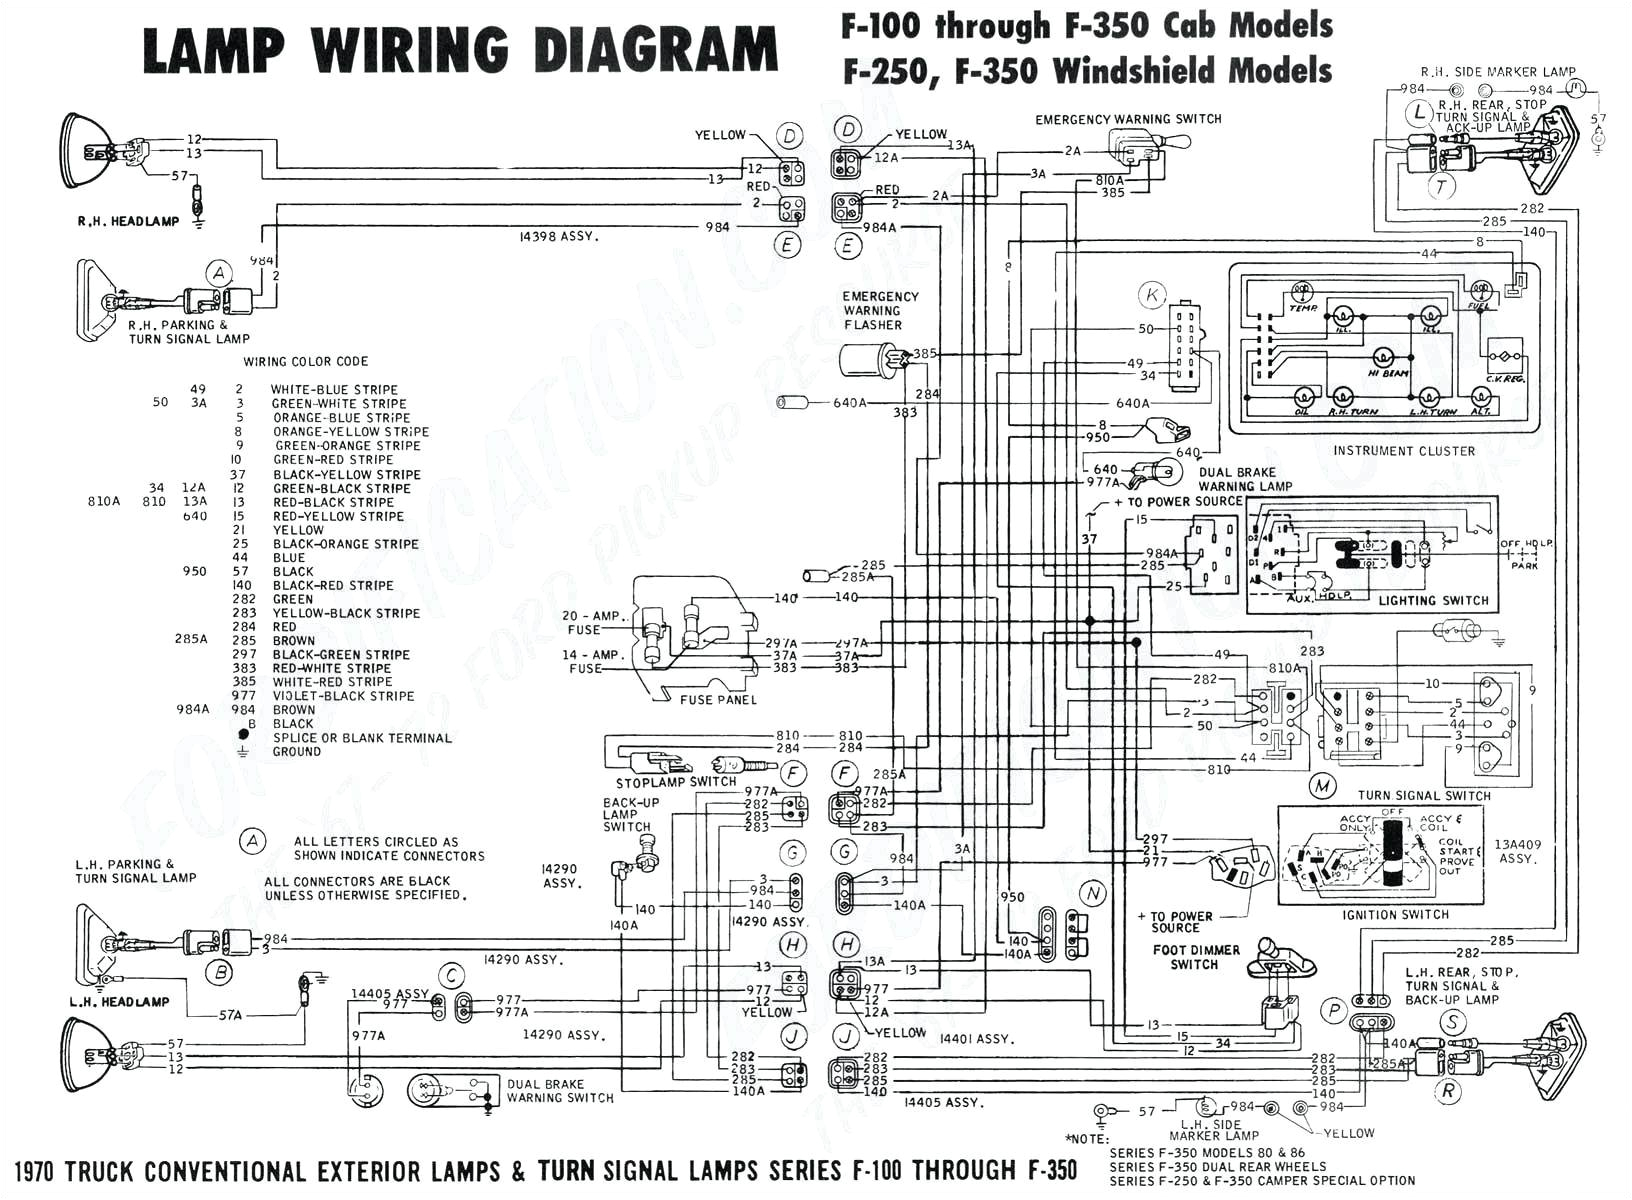 wiring diagram in cars wiring diagram database basic auto electrical diagram